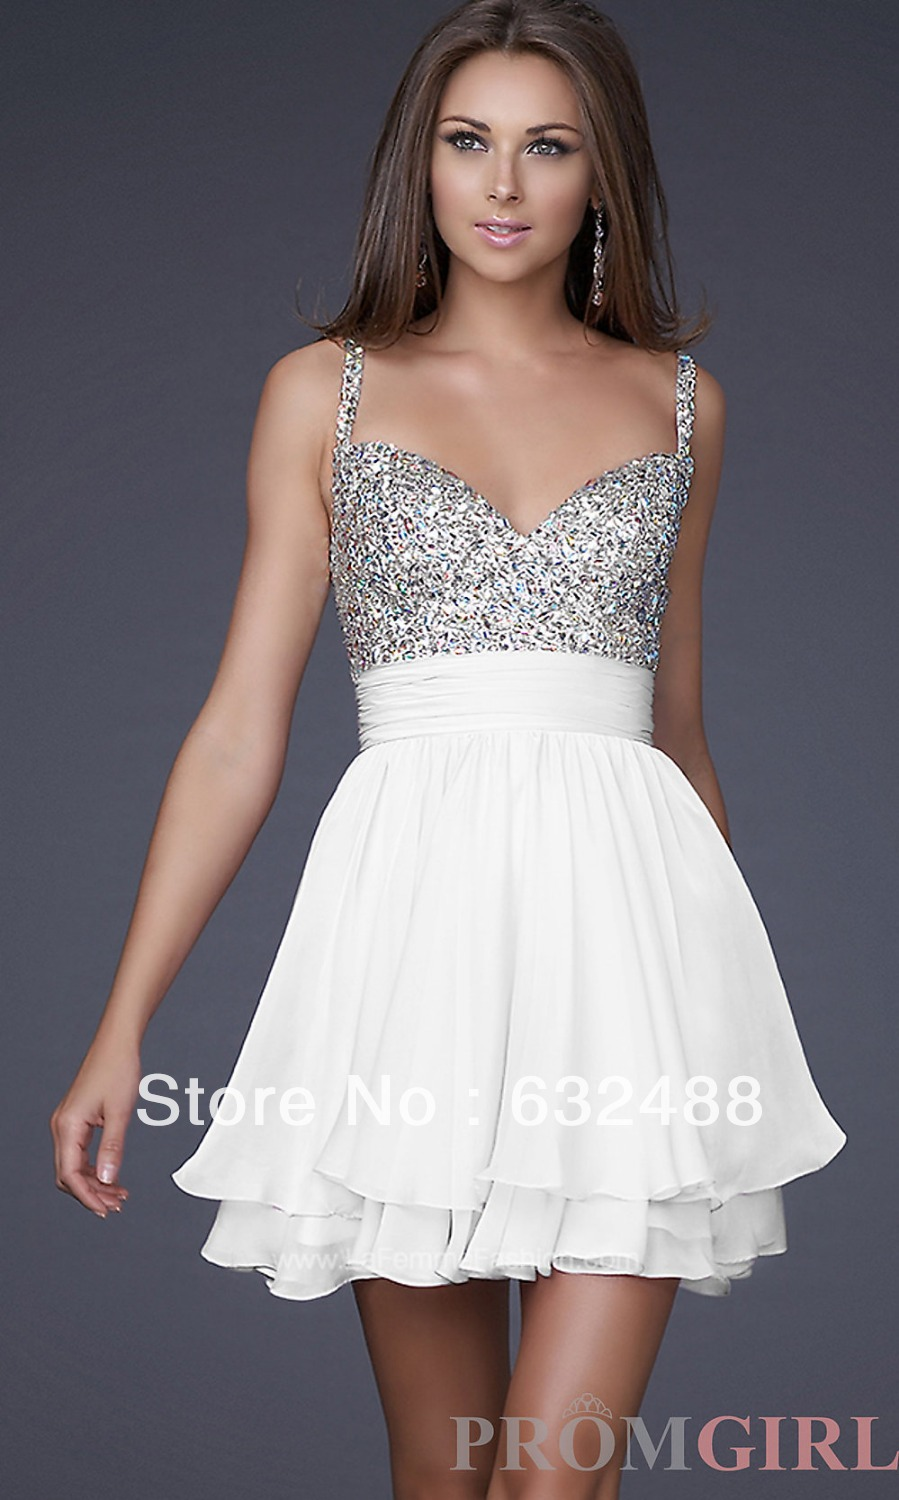 Collection White Formal Dresses For Juniors Pictures - Giftlist